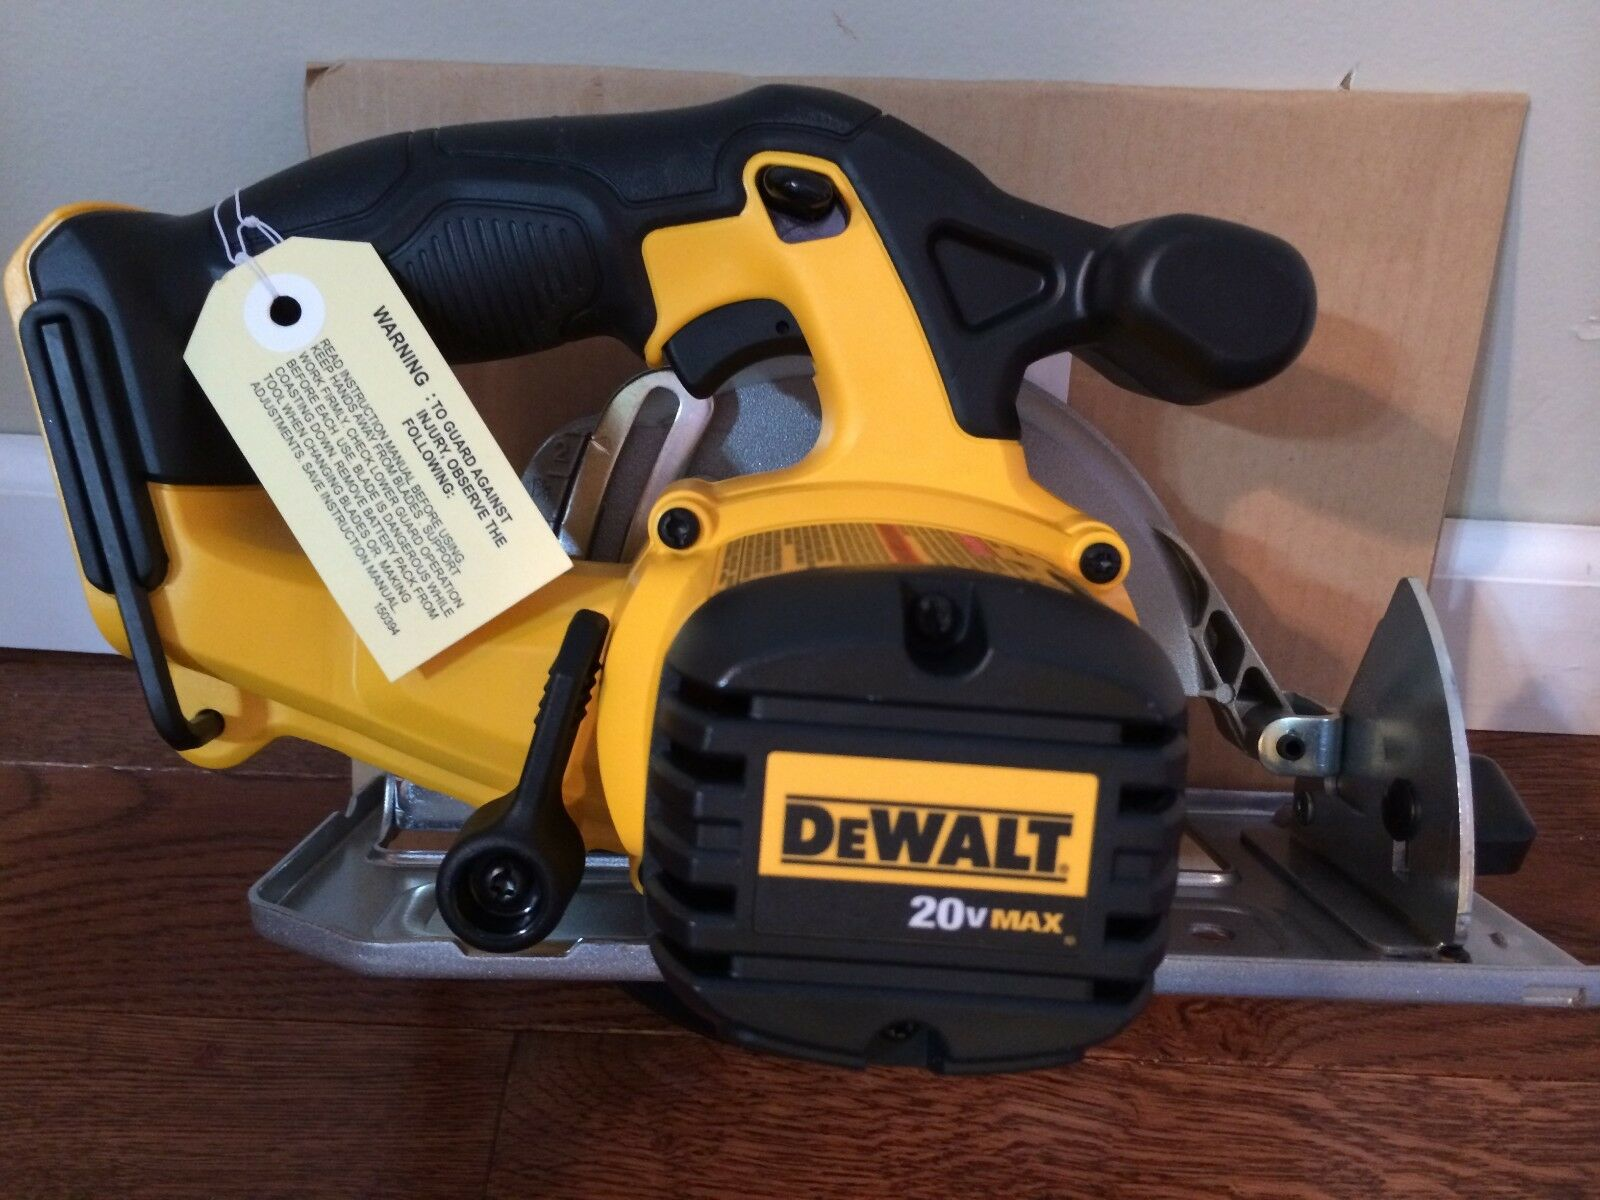 Dewalt dcs393 20v cordless circular handsaw ebay greentooth Choice Image